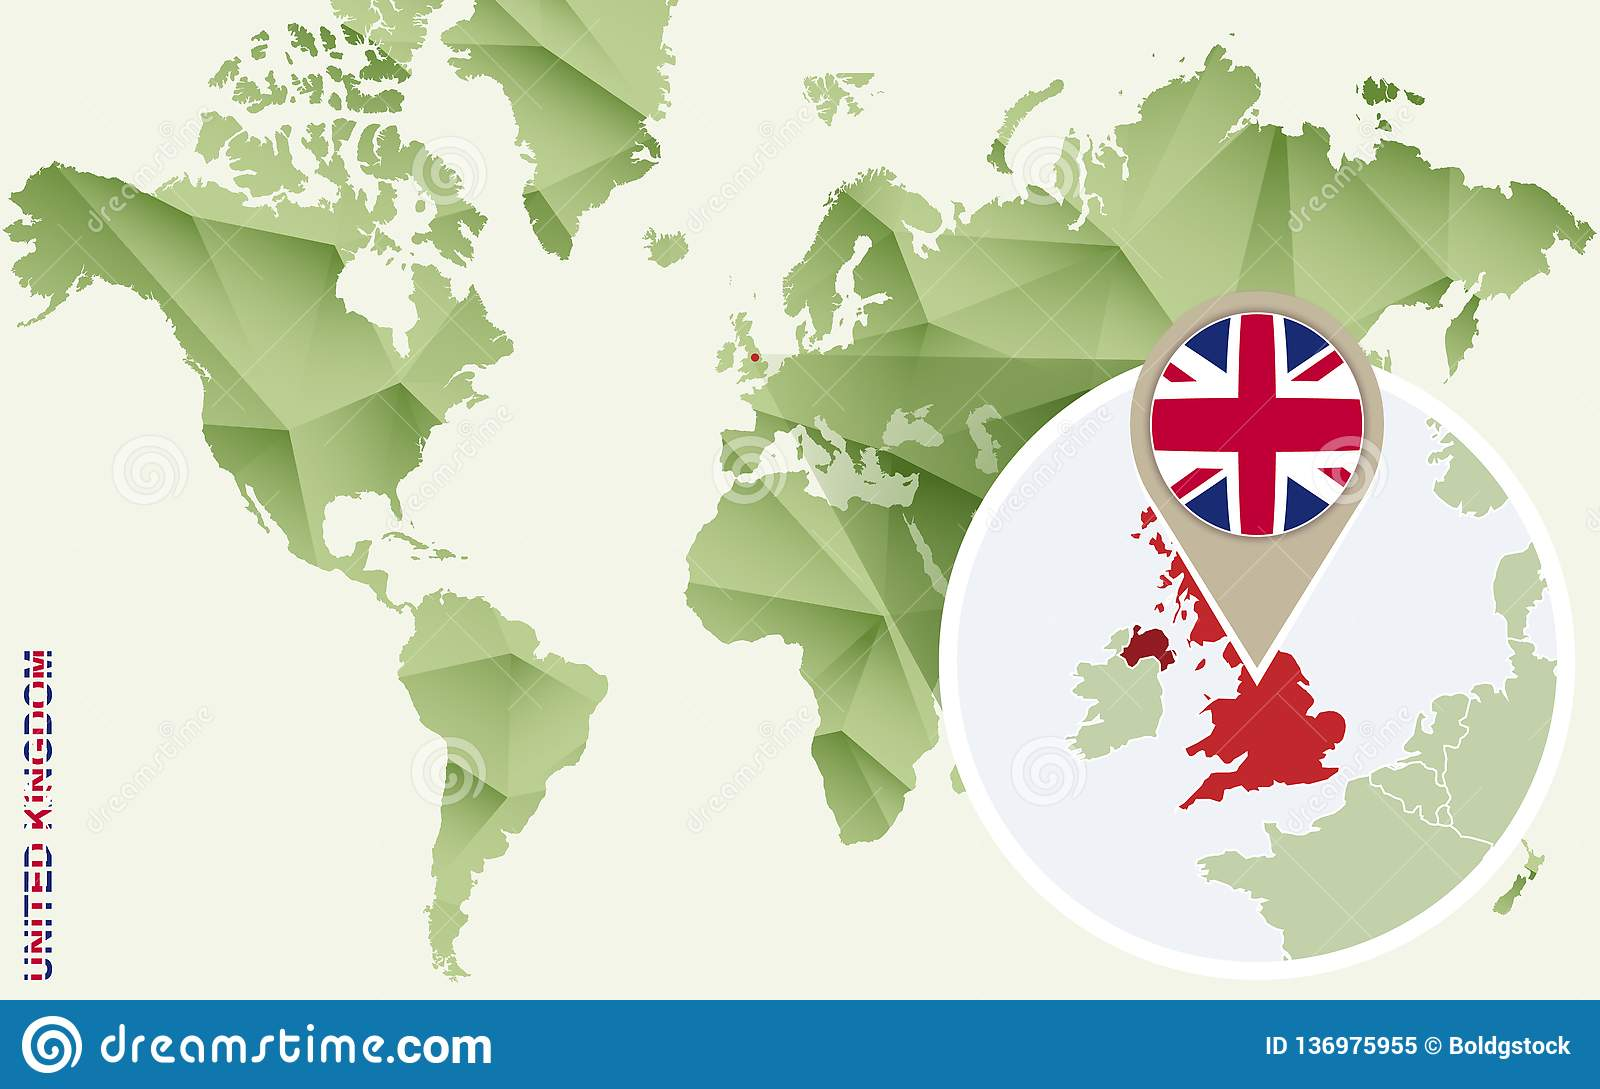 Map Of Uk Detailed.Infographic For United Kingdom Detailed Map Of Uk With Flag Stock